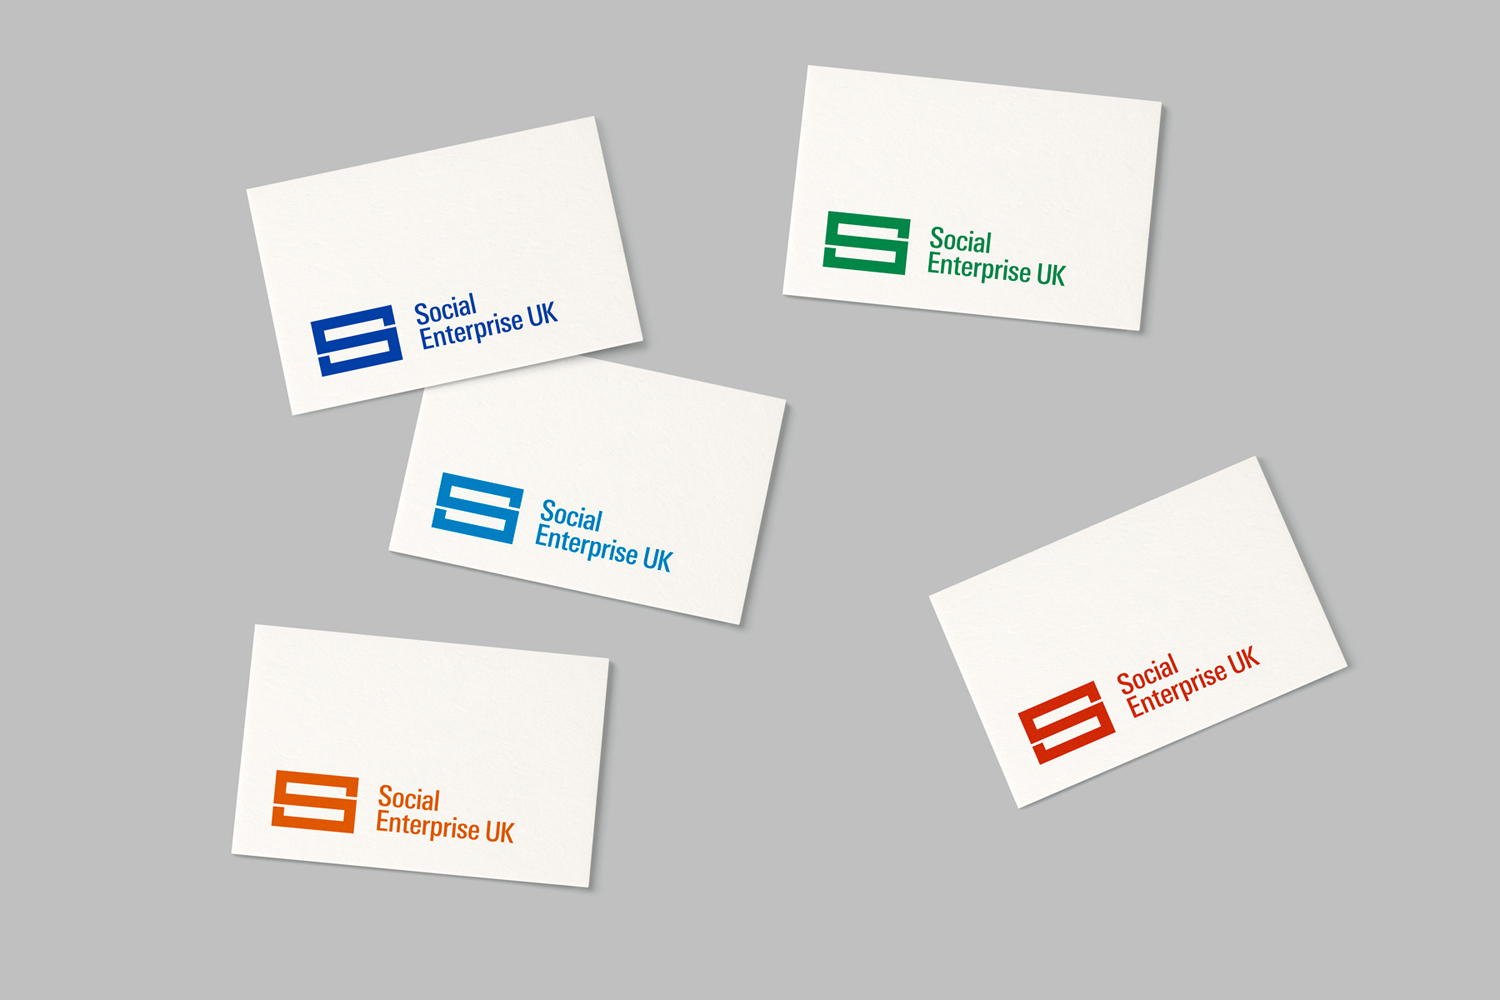 Logo for Social Enterprise UK by London based graphic design studio Paul Belford Ltd.